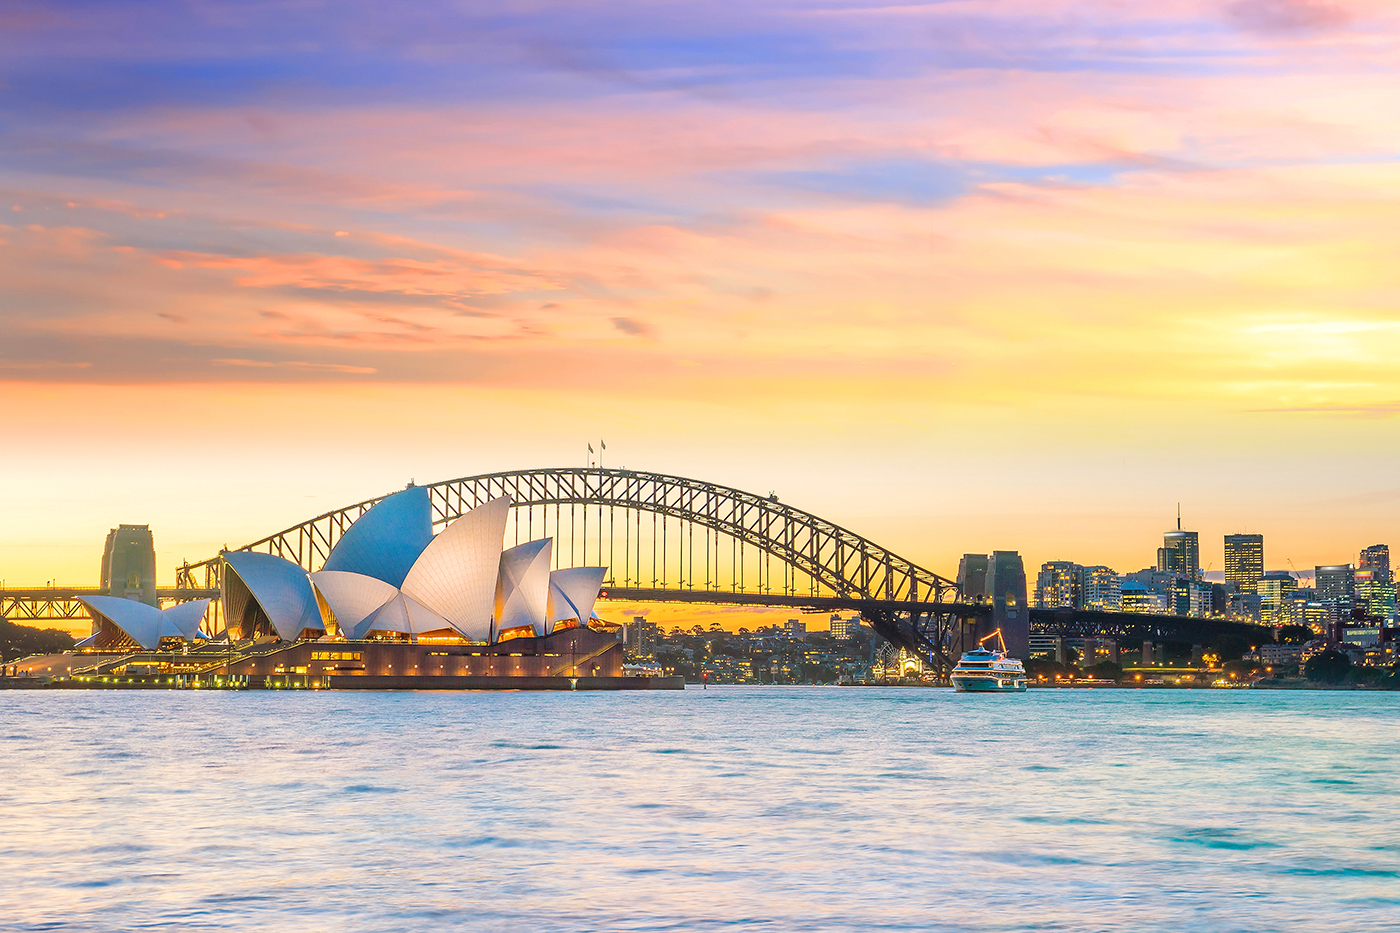 A view of Sydney Harbour from the water at sunrise, with the Harbour Bridge and Sydney Opera House